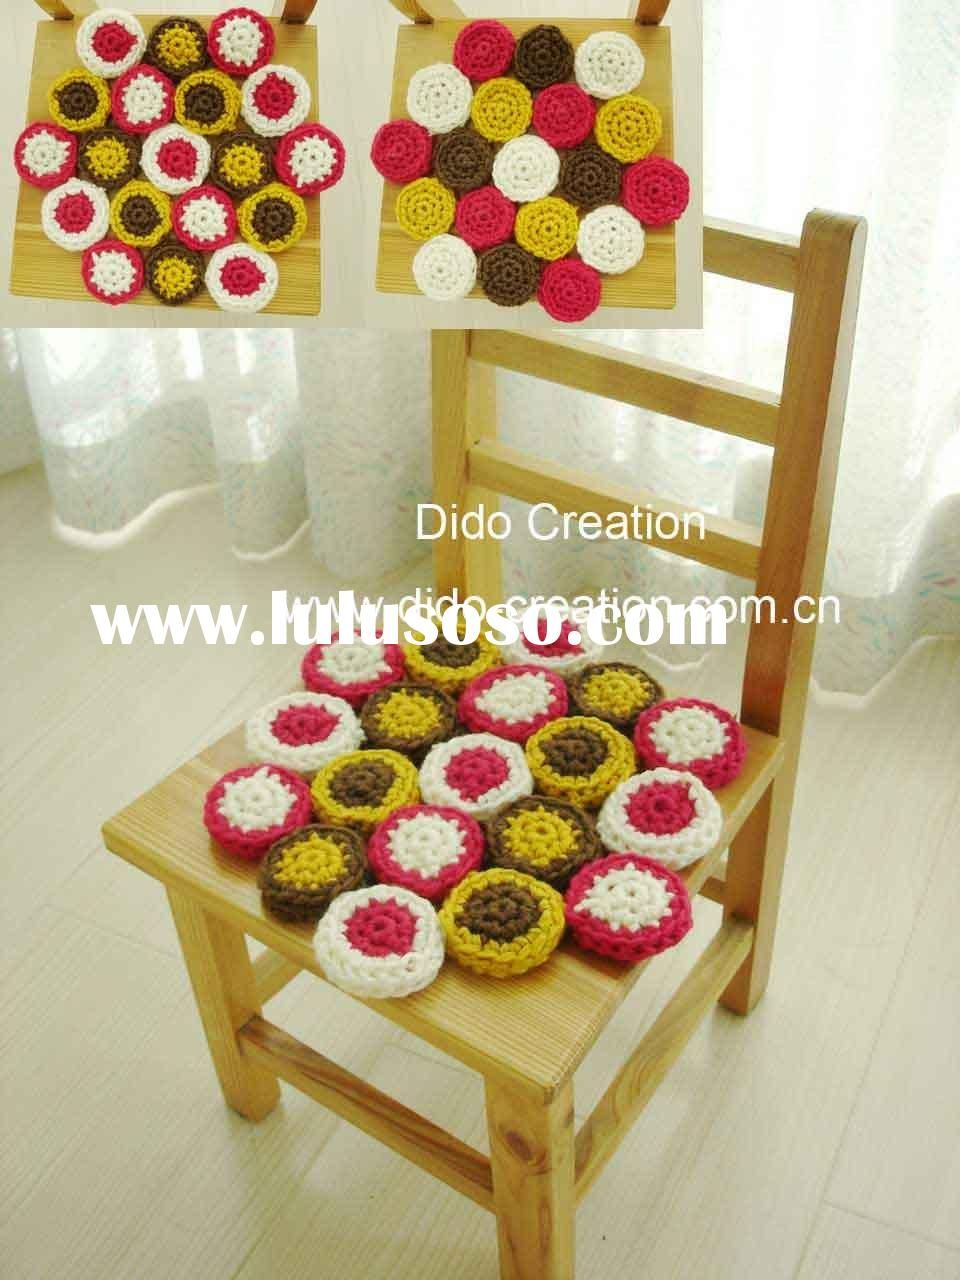 Cushions for my dining room chairs crochet chair pads crochet cushions for my dining room chairs crochet chair pads crochet chair pads manufacturers in dzzzfo